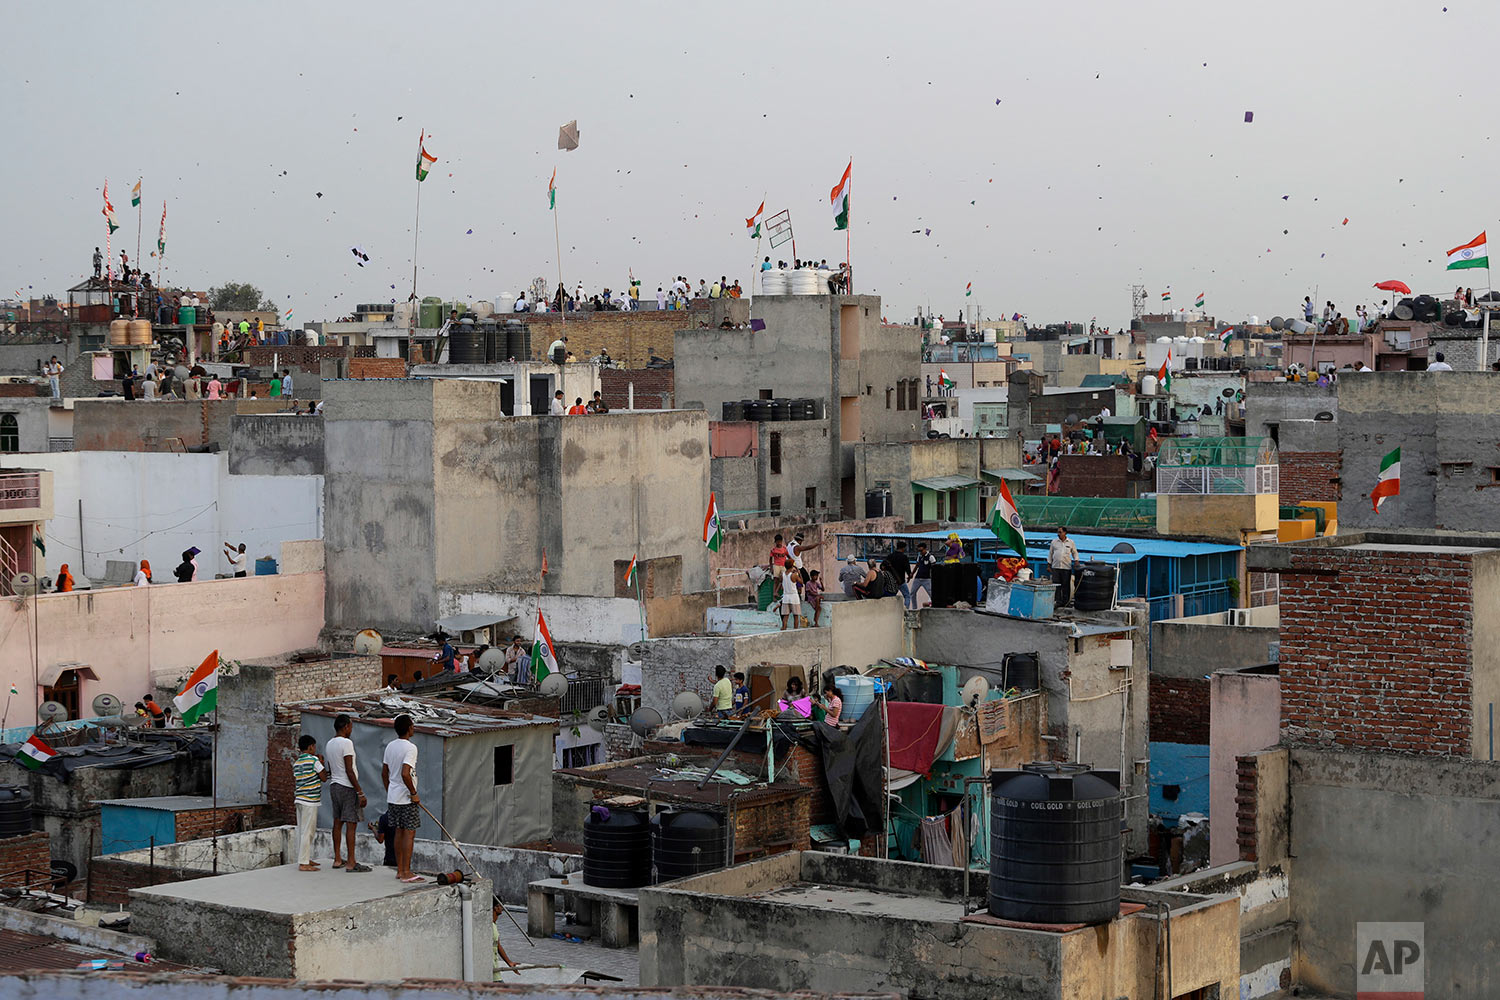 In this Tuesday, Aug. 15, 2017 photo, Indians fly kites on rooftops during Independence Day celebrations in the old quarters of New Delhi, India. The annual tradition of flying kites over the Indian capital on Independence Day takes a painful toll on birds that fall victim to their razor-sharp strings. It happens mostly to pigeons but also to crows, eagles and parrots. (AP Photo/Tsering Topgyal)